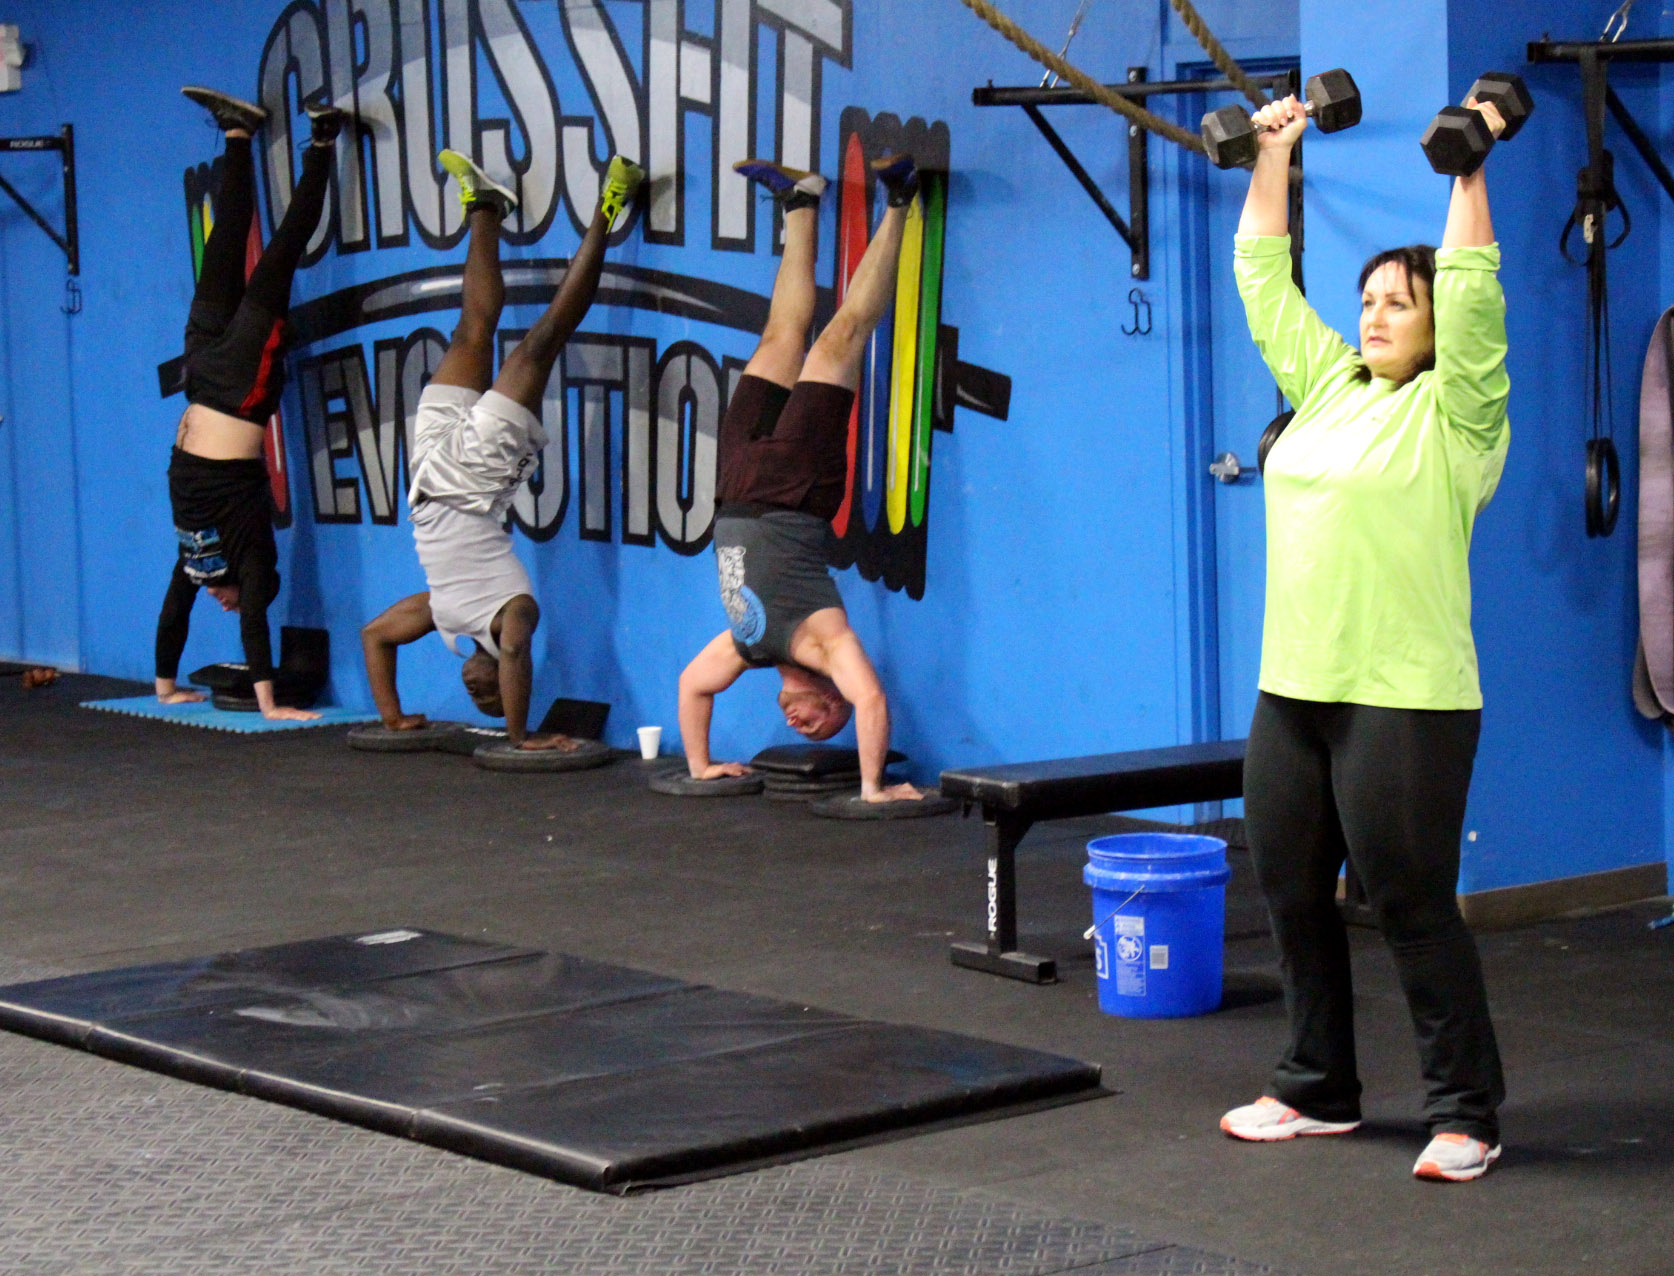 Shoulder Presses are a great beginner exercise instead of Handstand Push-ups